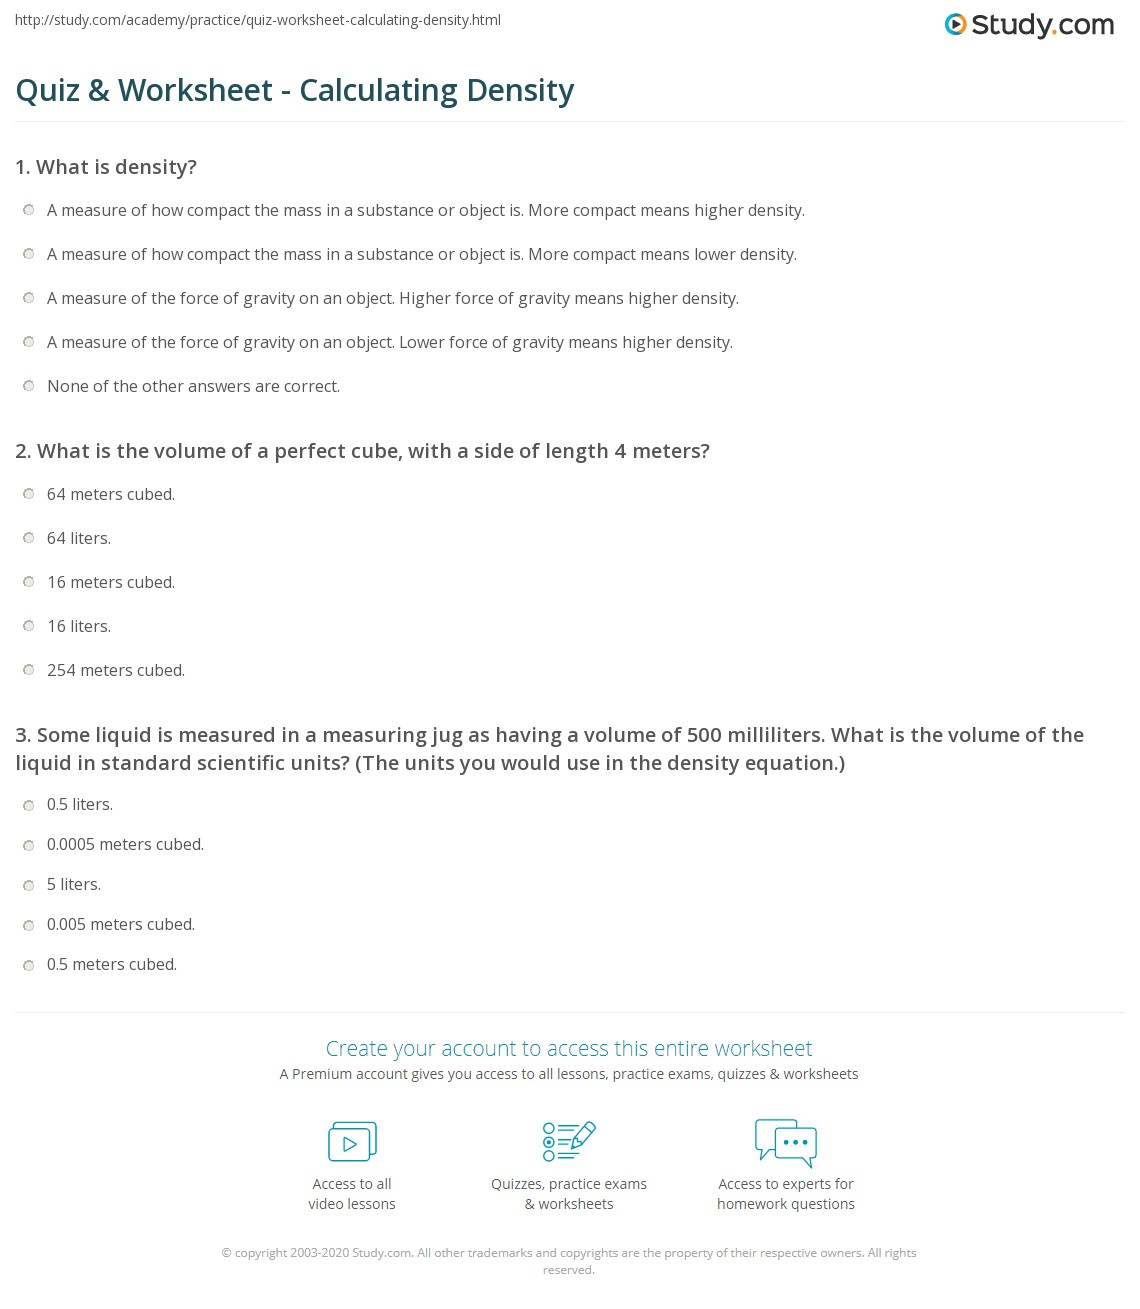 Quiz & Worksheet - Calculating Density | Study.com